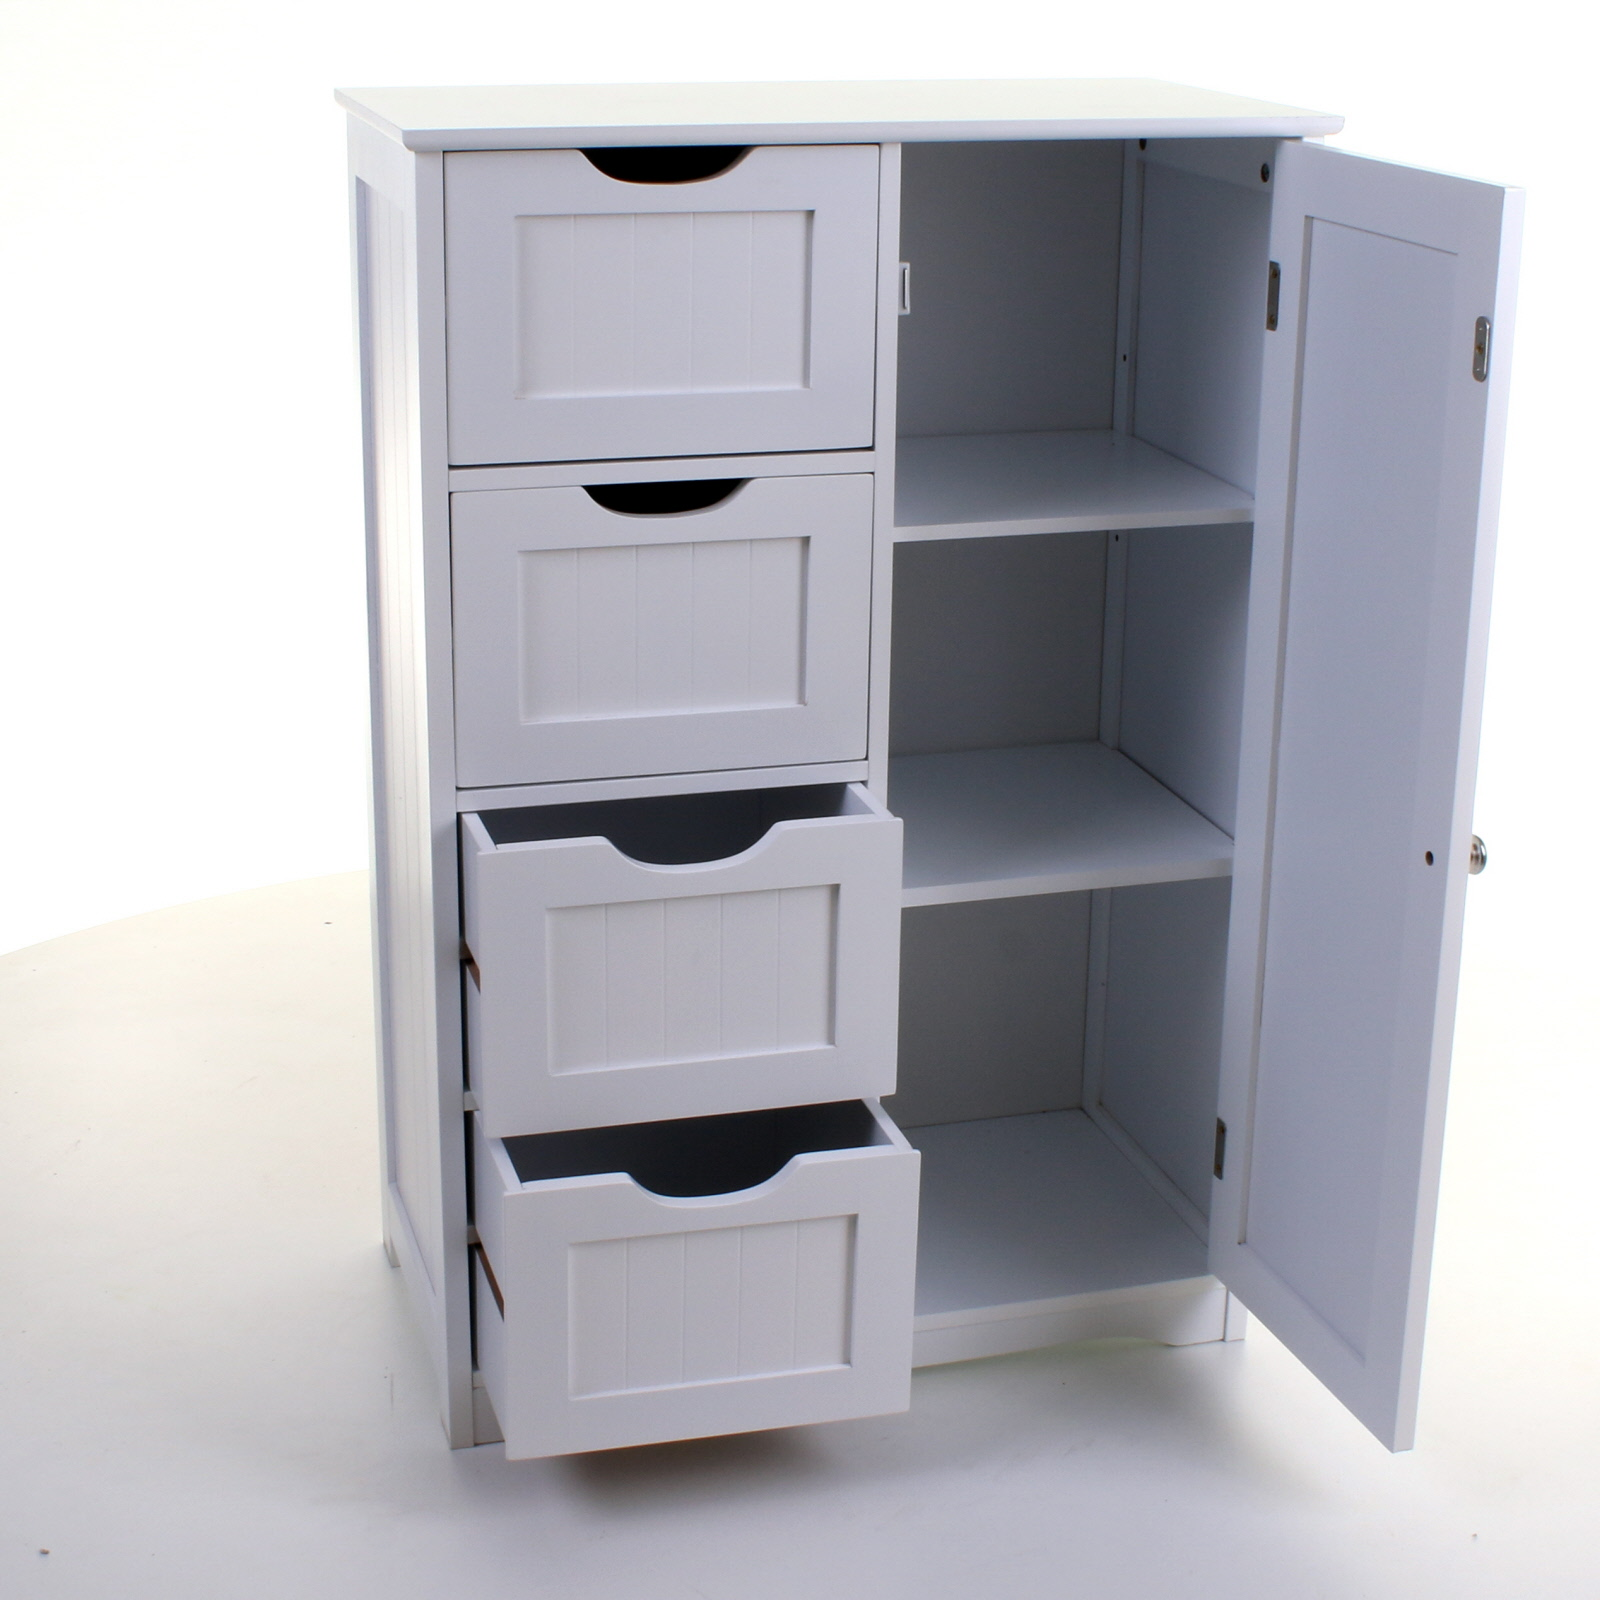 Drawer Units 4 Drawer Cabinet Bathroom Storage Unit Chest Cupboard